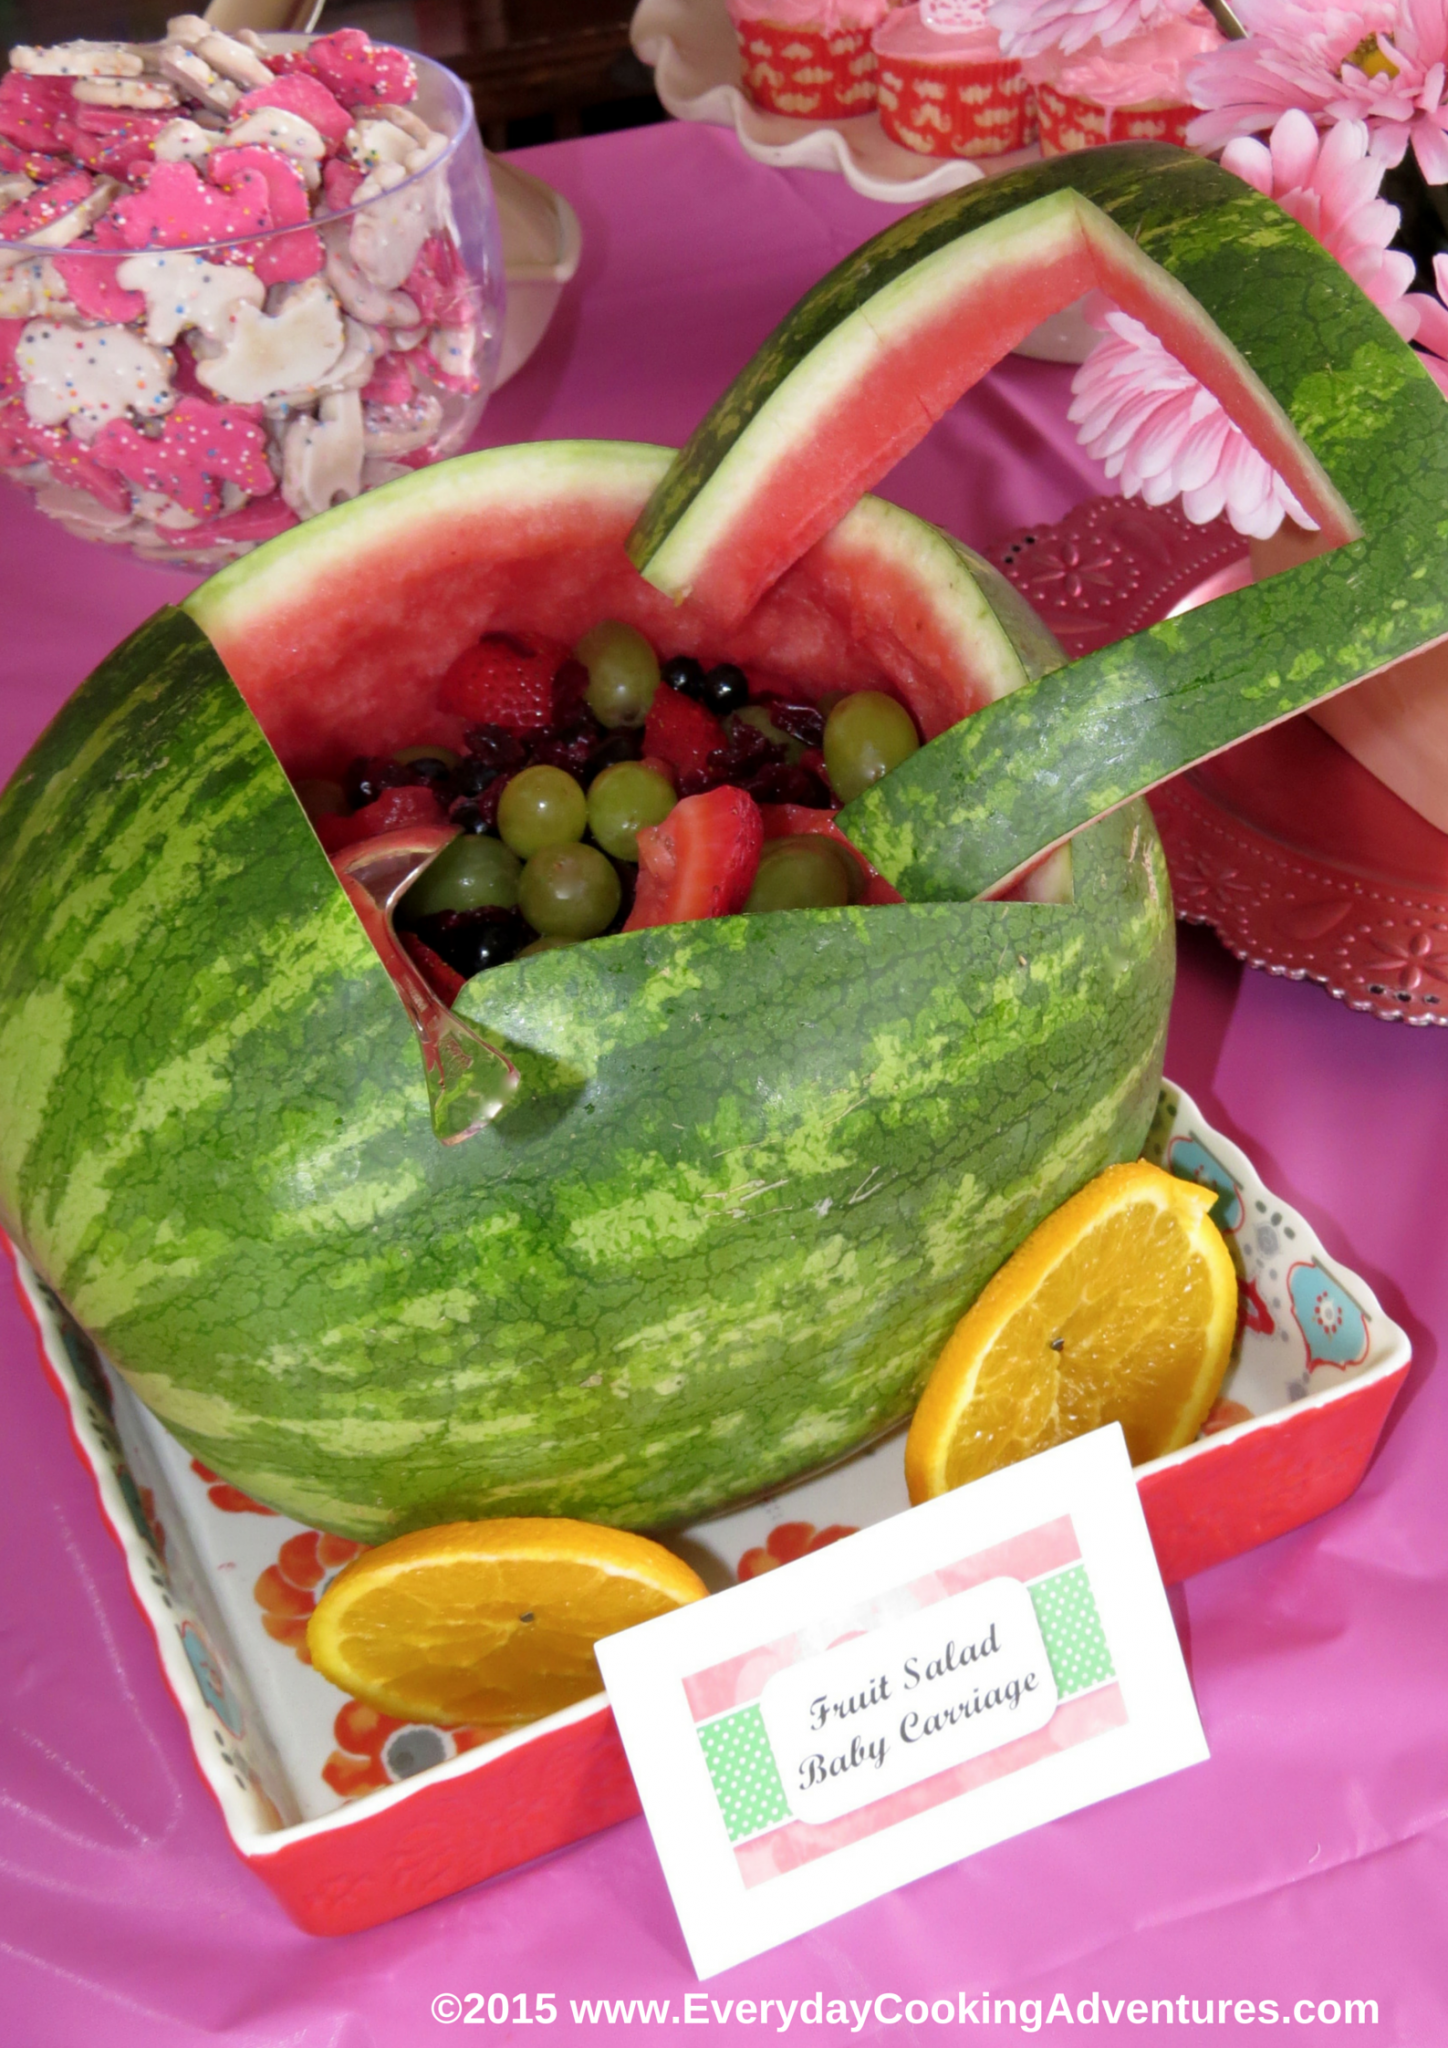 Taste Of Home's Watermelon Baby Carriage